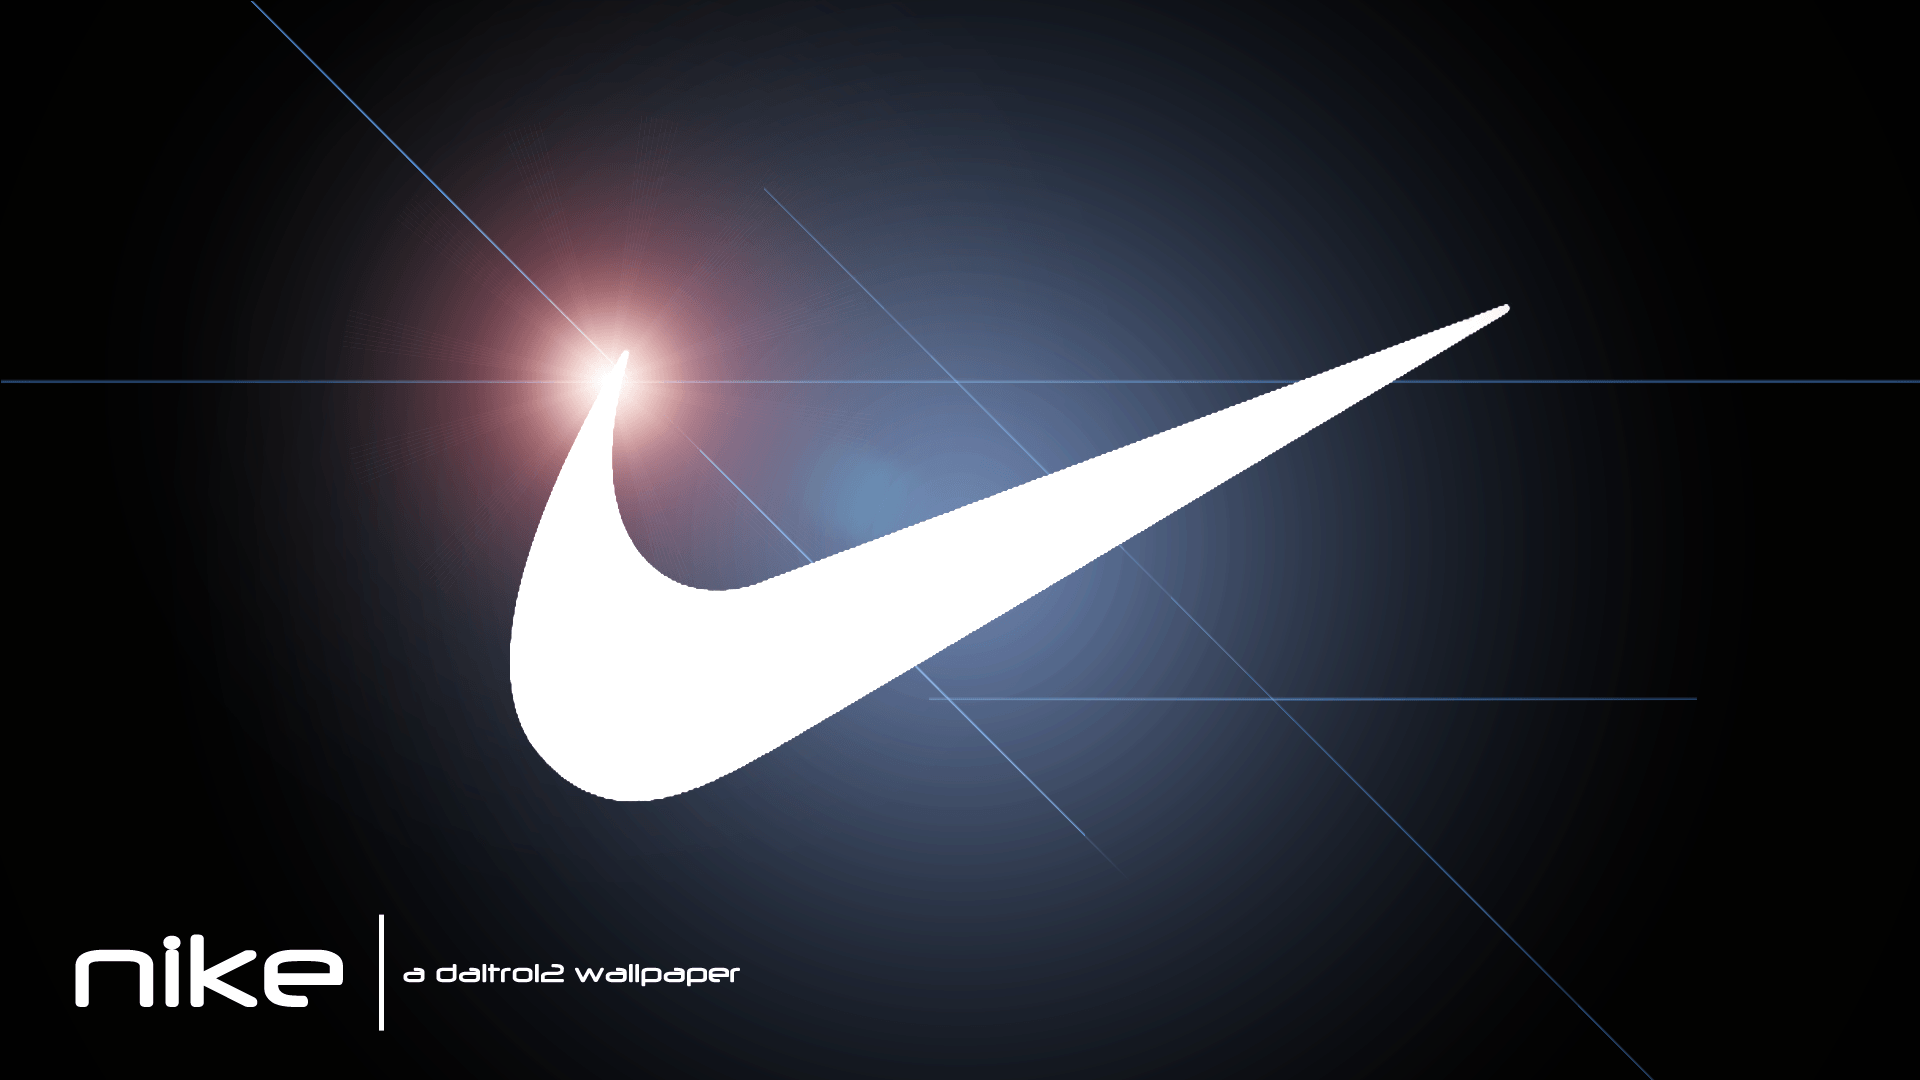 New Nike Wallpapers - Wallpaper Cave